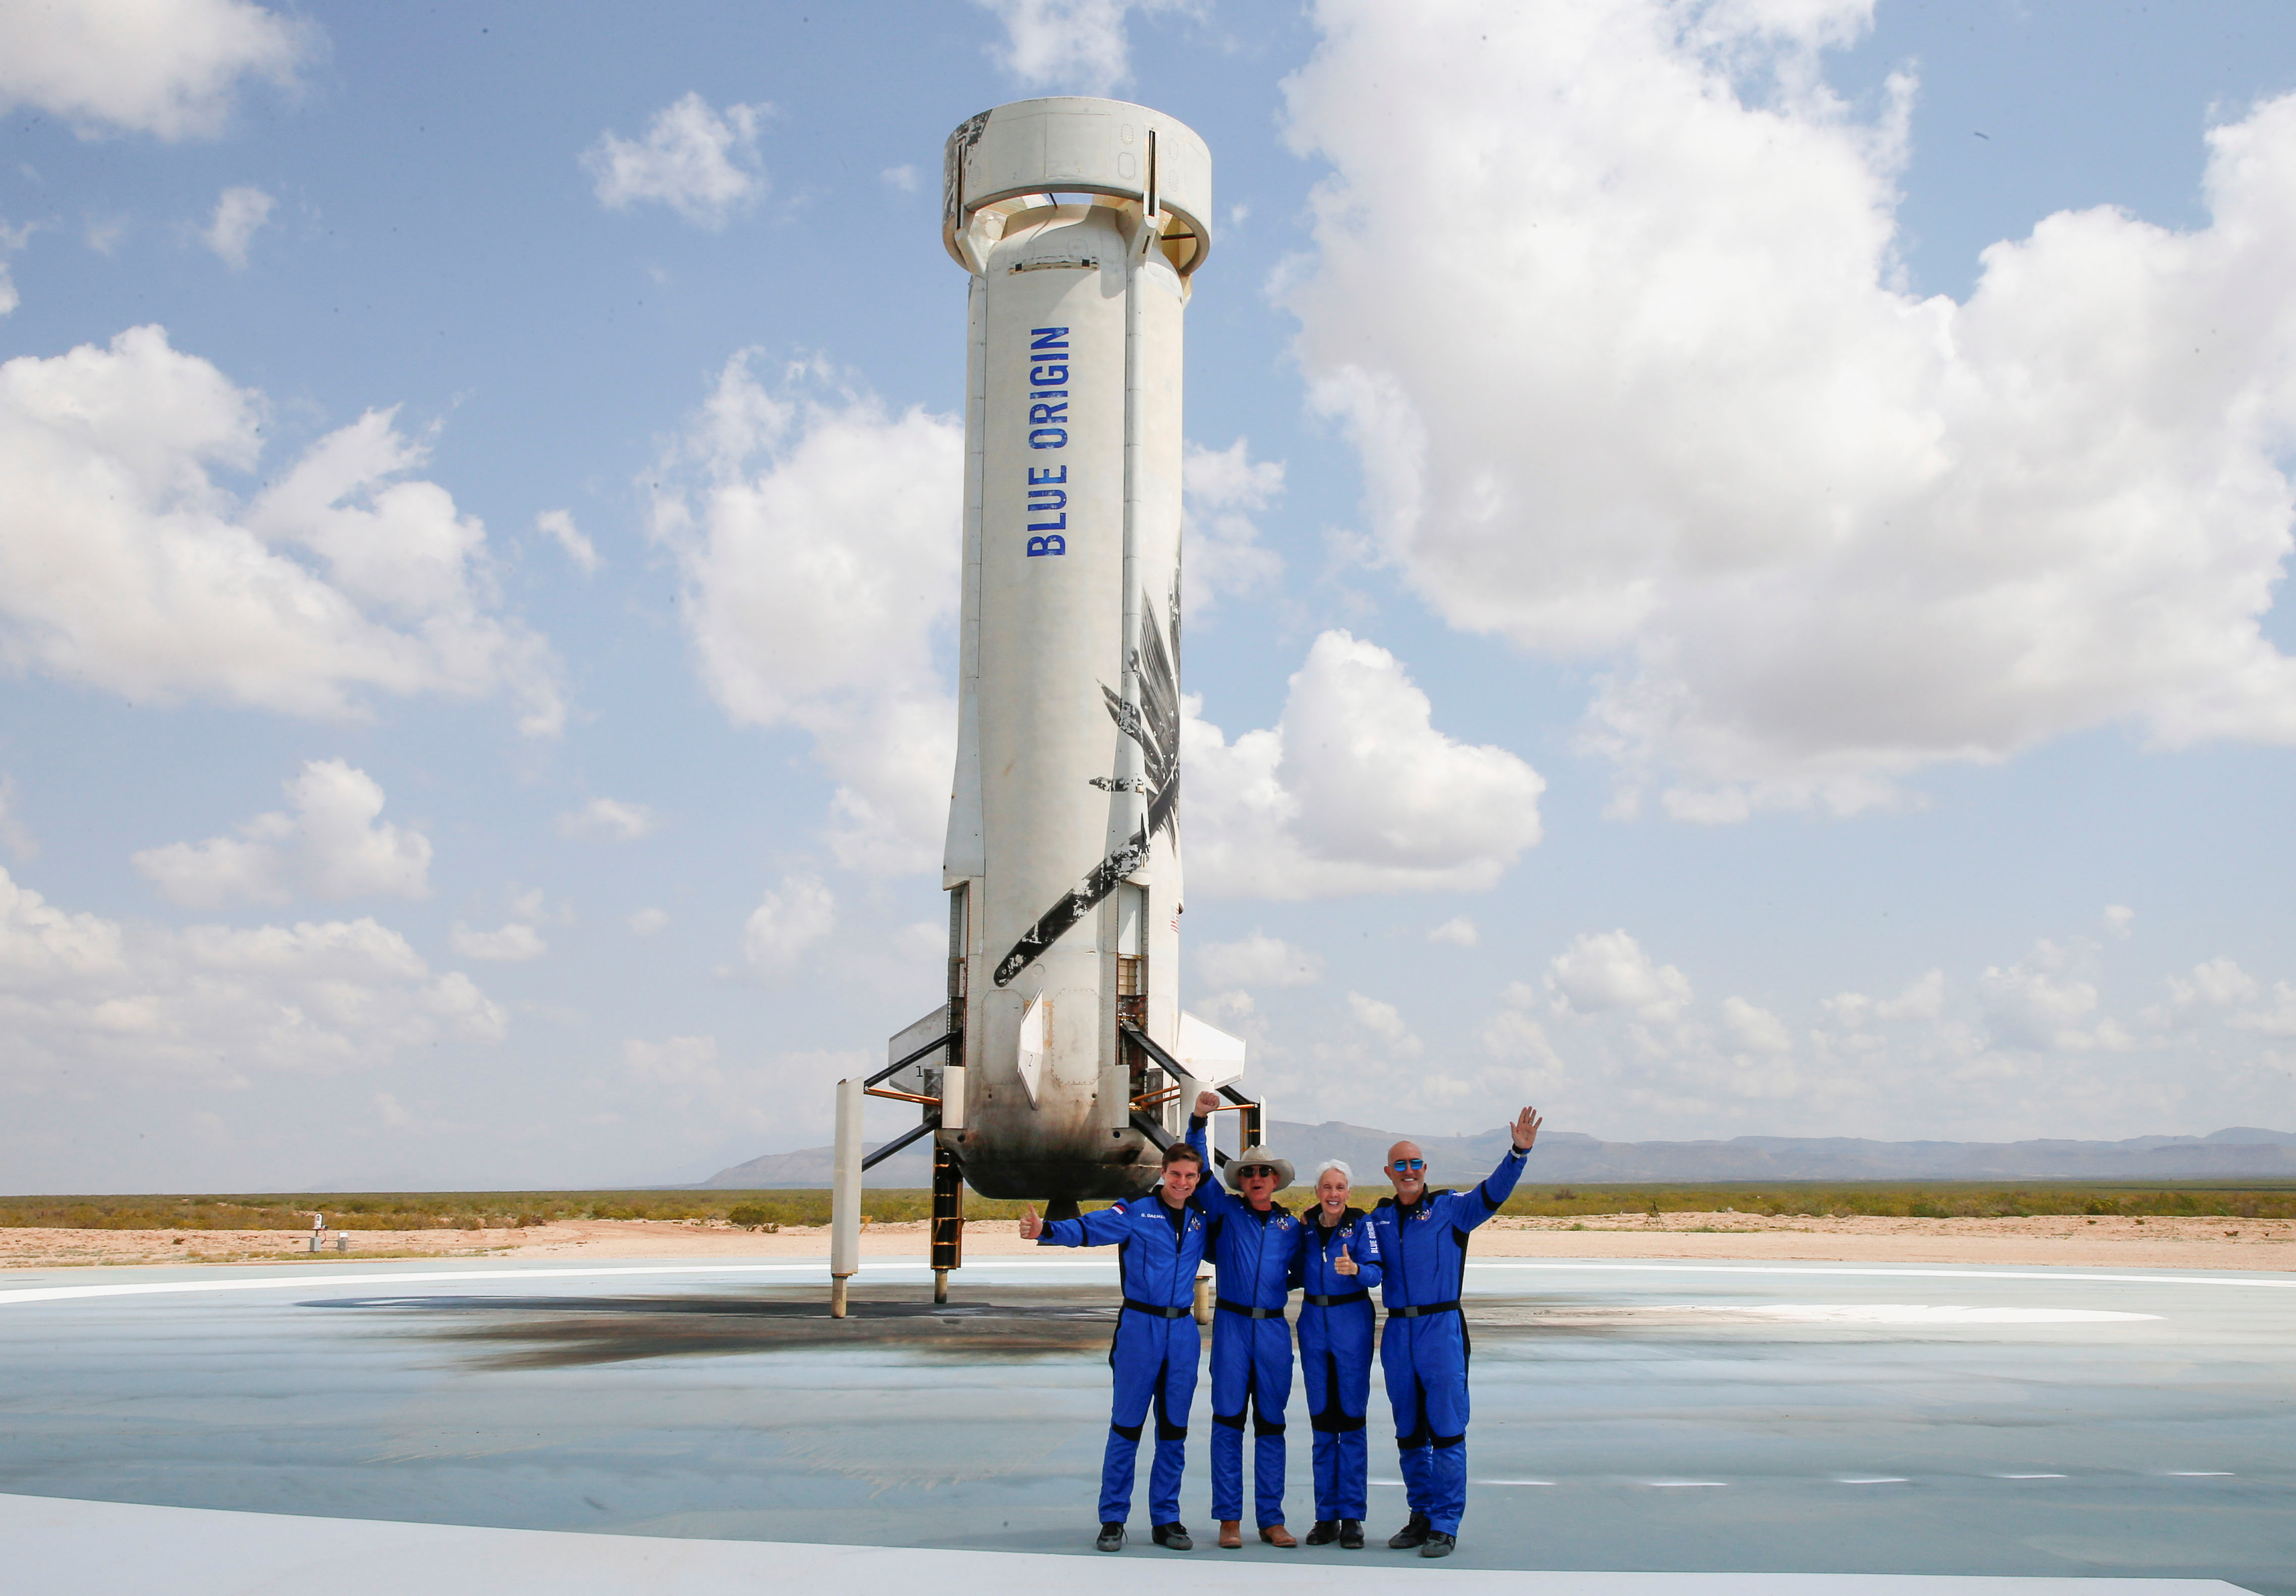 Billionaire American businessman Jeff Bezos (2nd-L) poses for pictures with crew mates, from left, Oliver Damen, 18, Bezos, Wally Funk, 82, and Mark Bezos at the landing pad after they flew on Blue Origin's inaugural flight to the edge of space, in the nearby town of Van Horn, Texas, U.S. July 20, 2021.   REUTERS/Joe Skipper